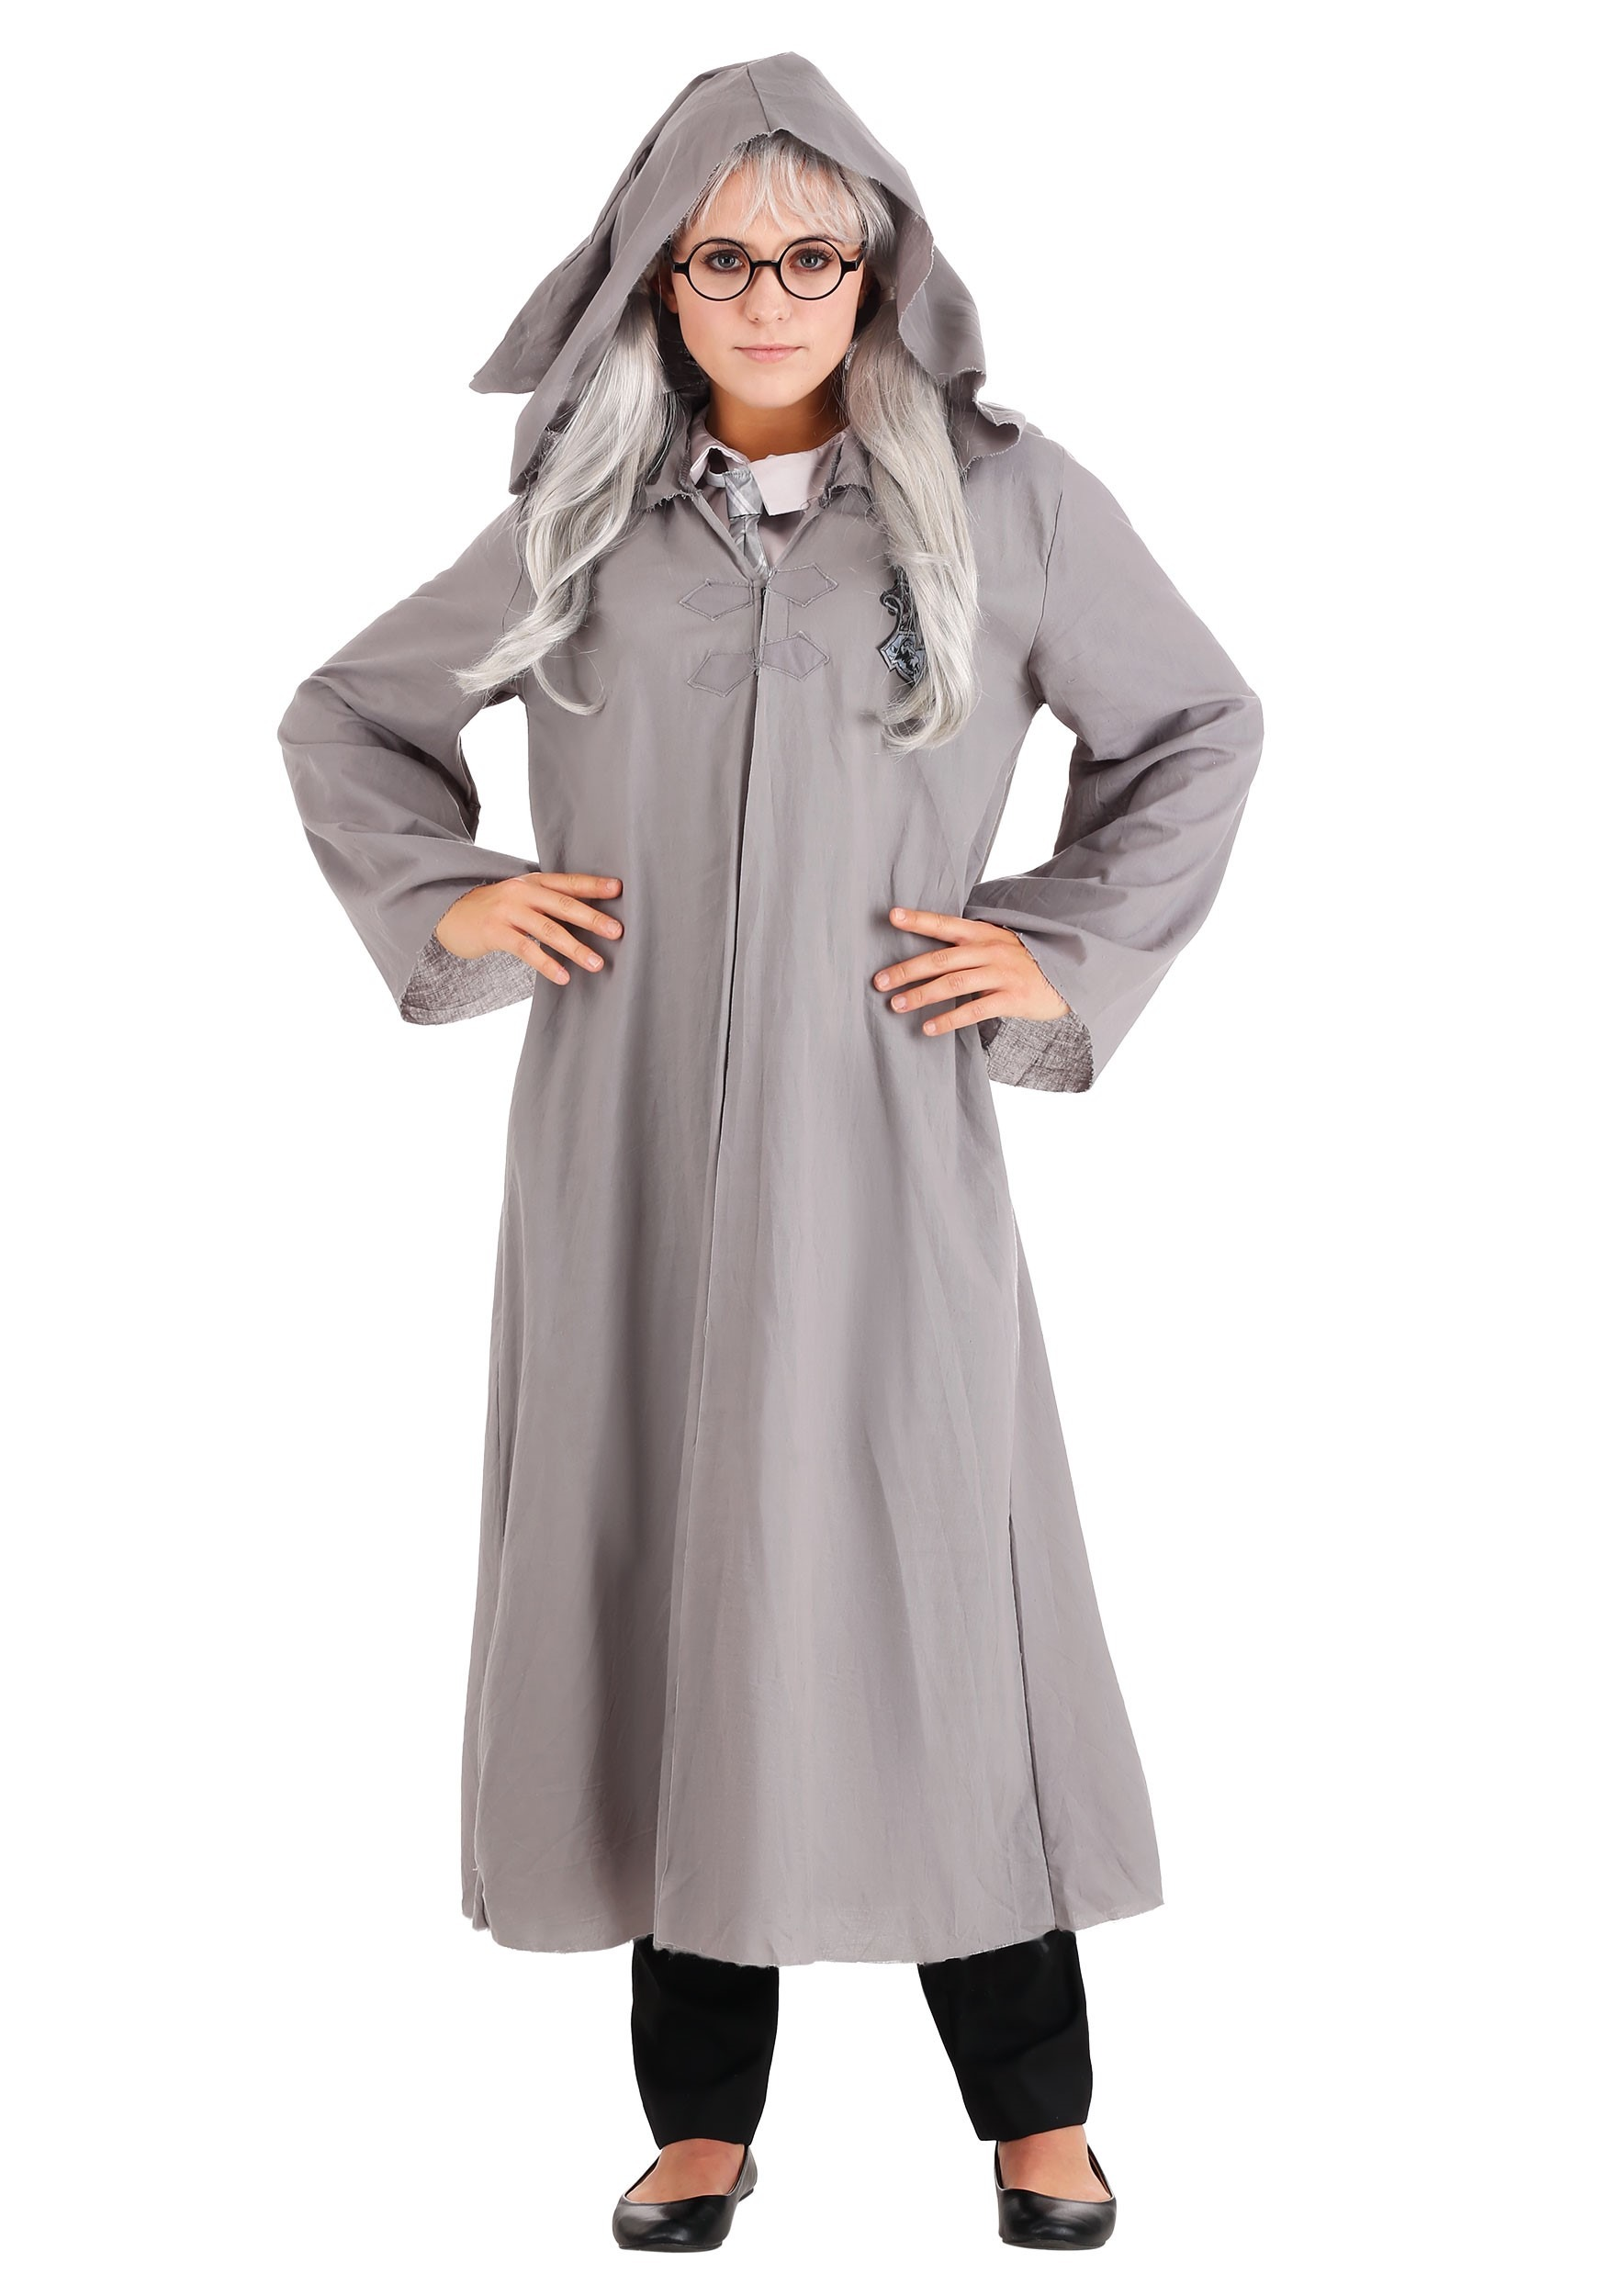 Harry Potter Moaning Myrtle Costume for Women